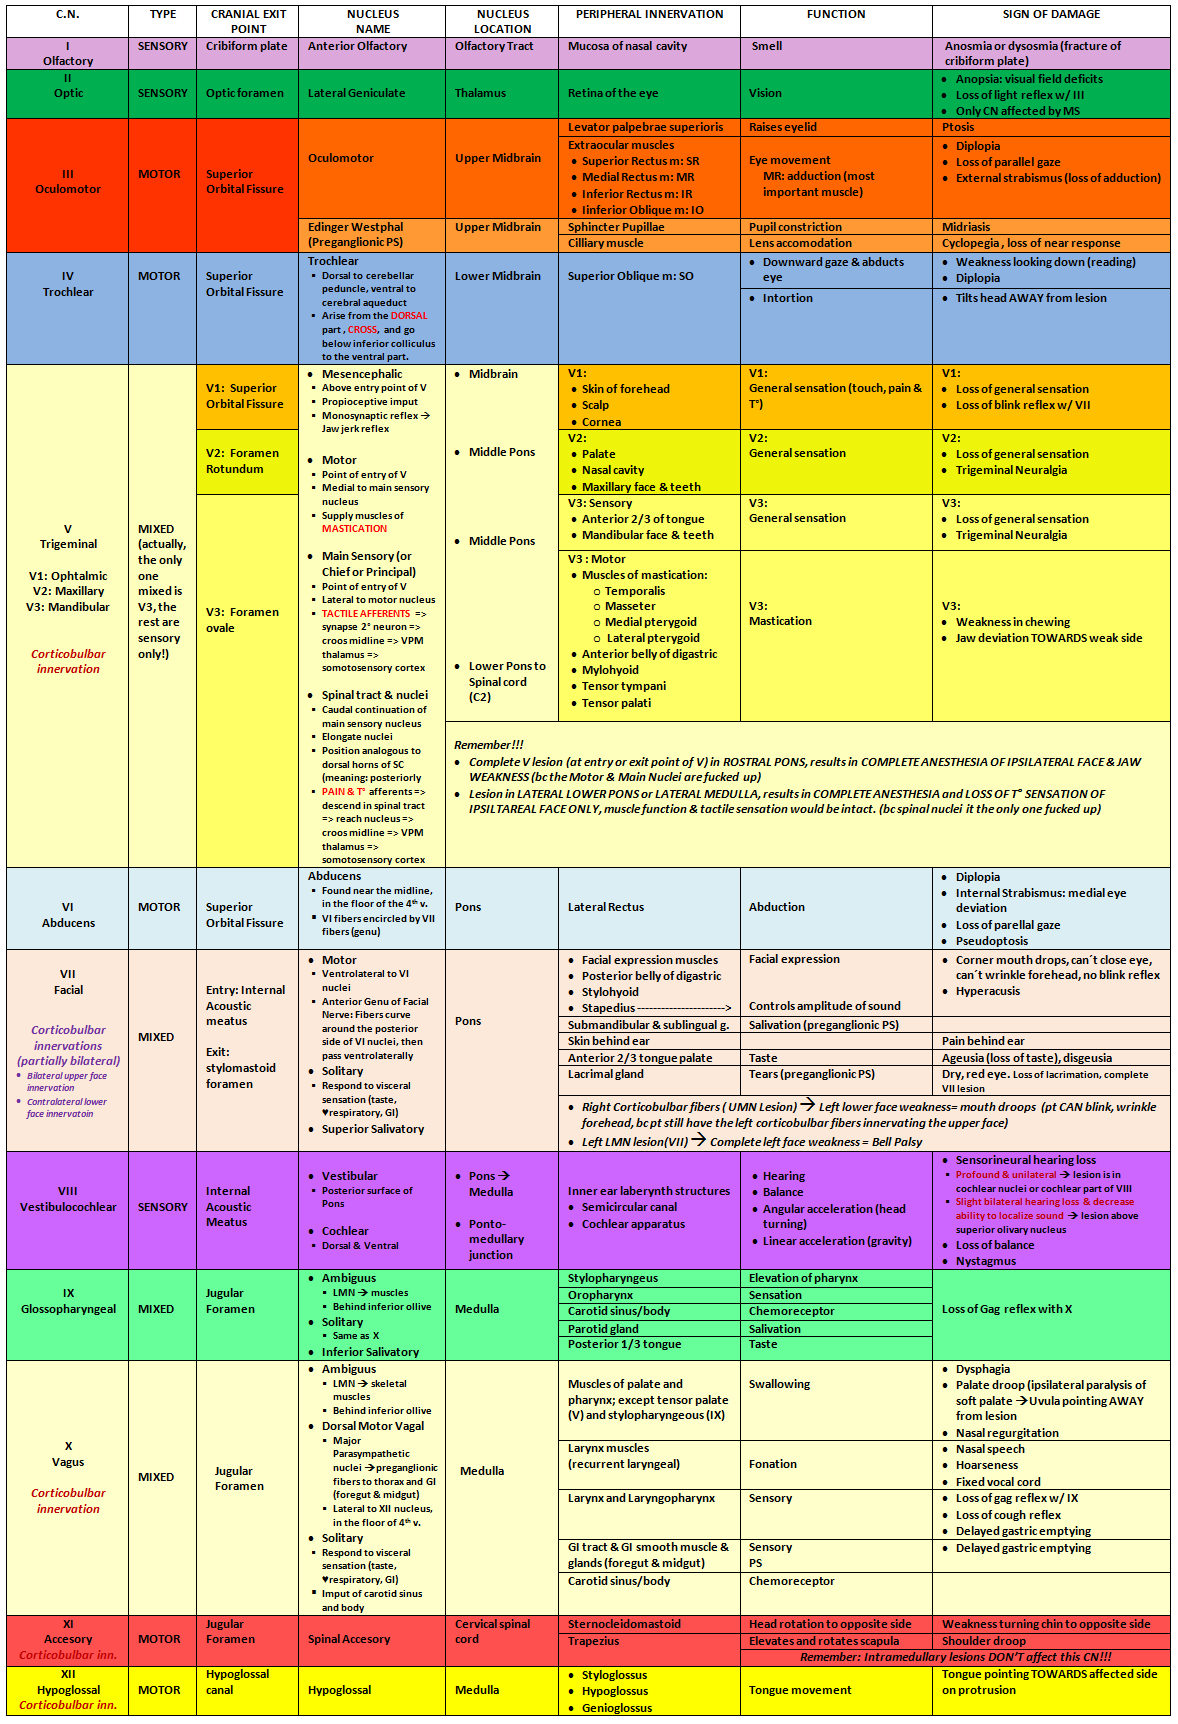 Cranial Nerve Chart With Name Type Cranial Exit Point